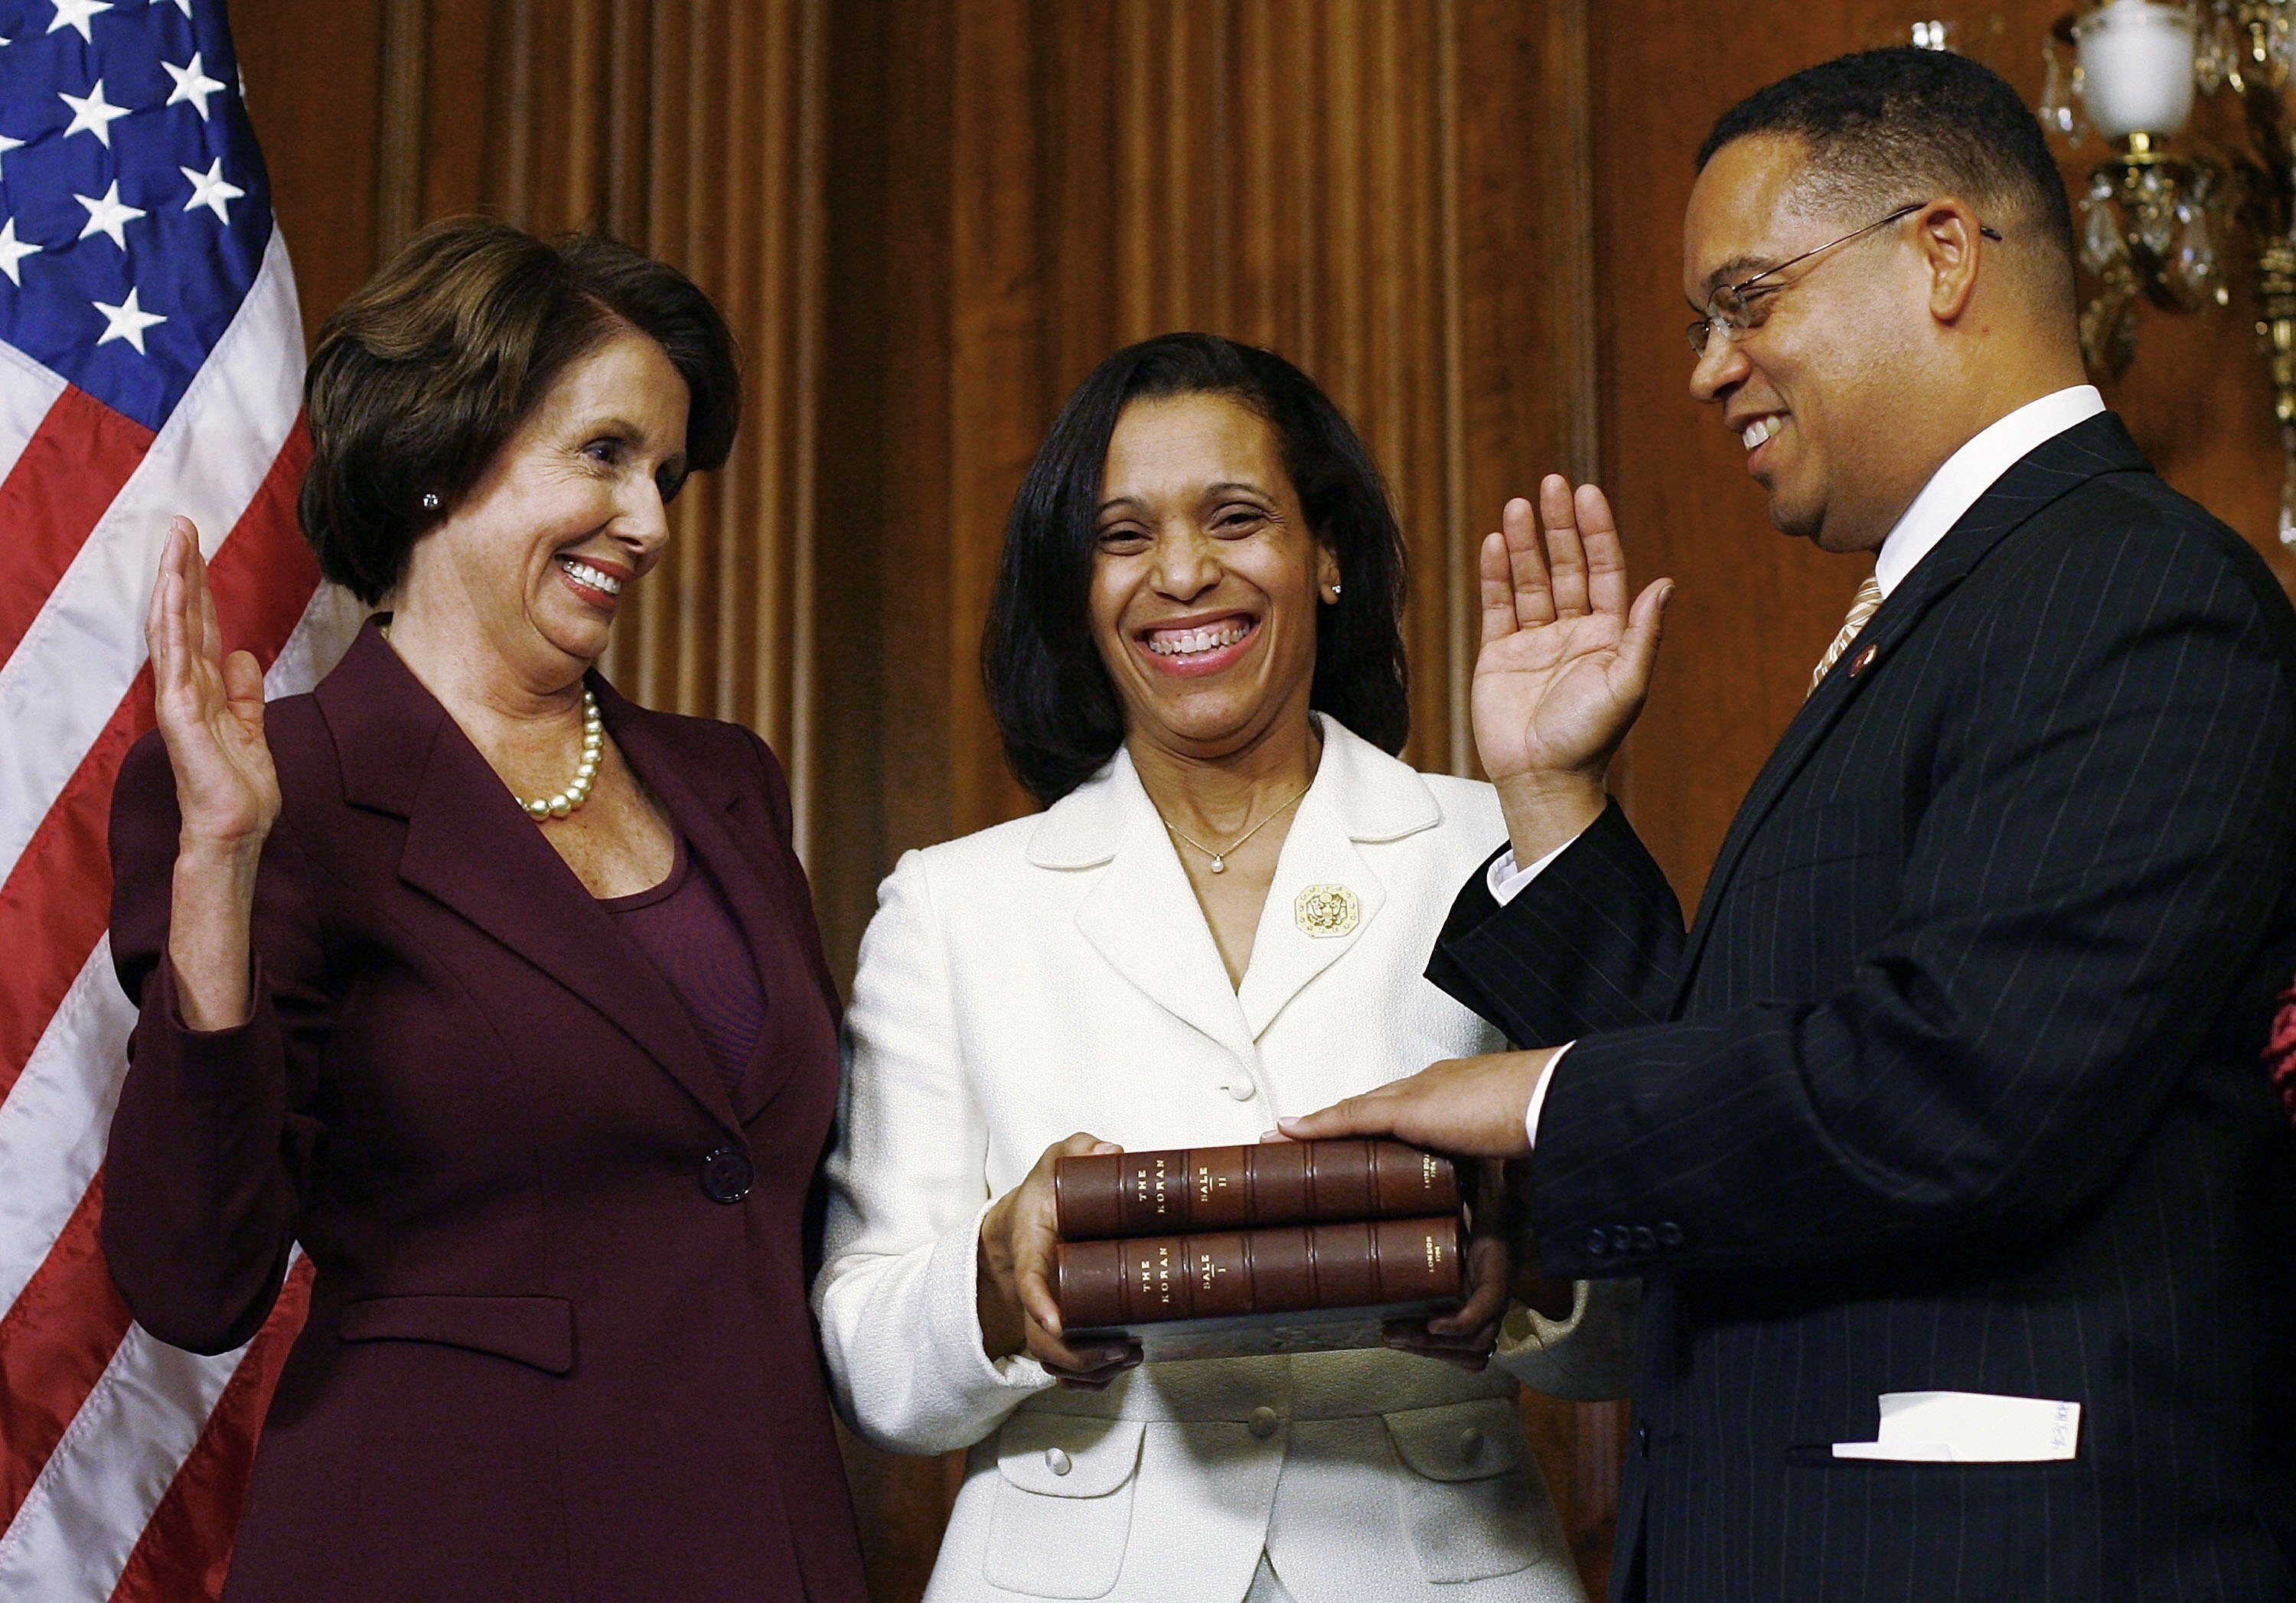 Keith Ellison (R) swears on a copy of the Quran belonging to Thomas Jefferson held by Kim Ellison (C) with House Speaker Nancy Pelosi at the U.S. Capitol, Washington, DC., Jan. 4, 2007. (Getty Images)